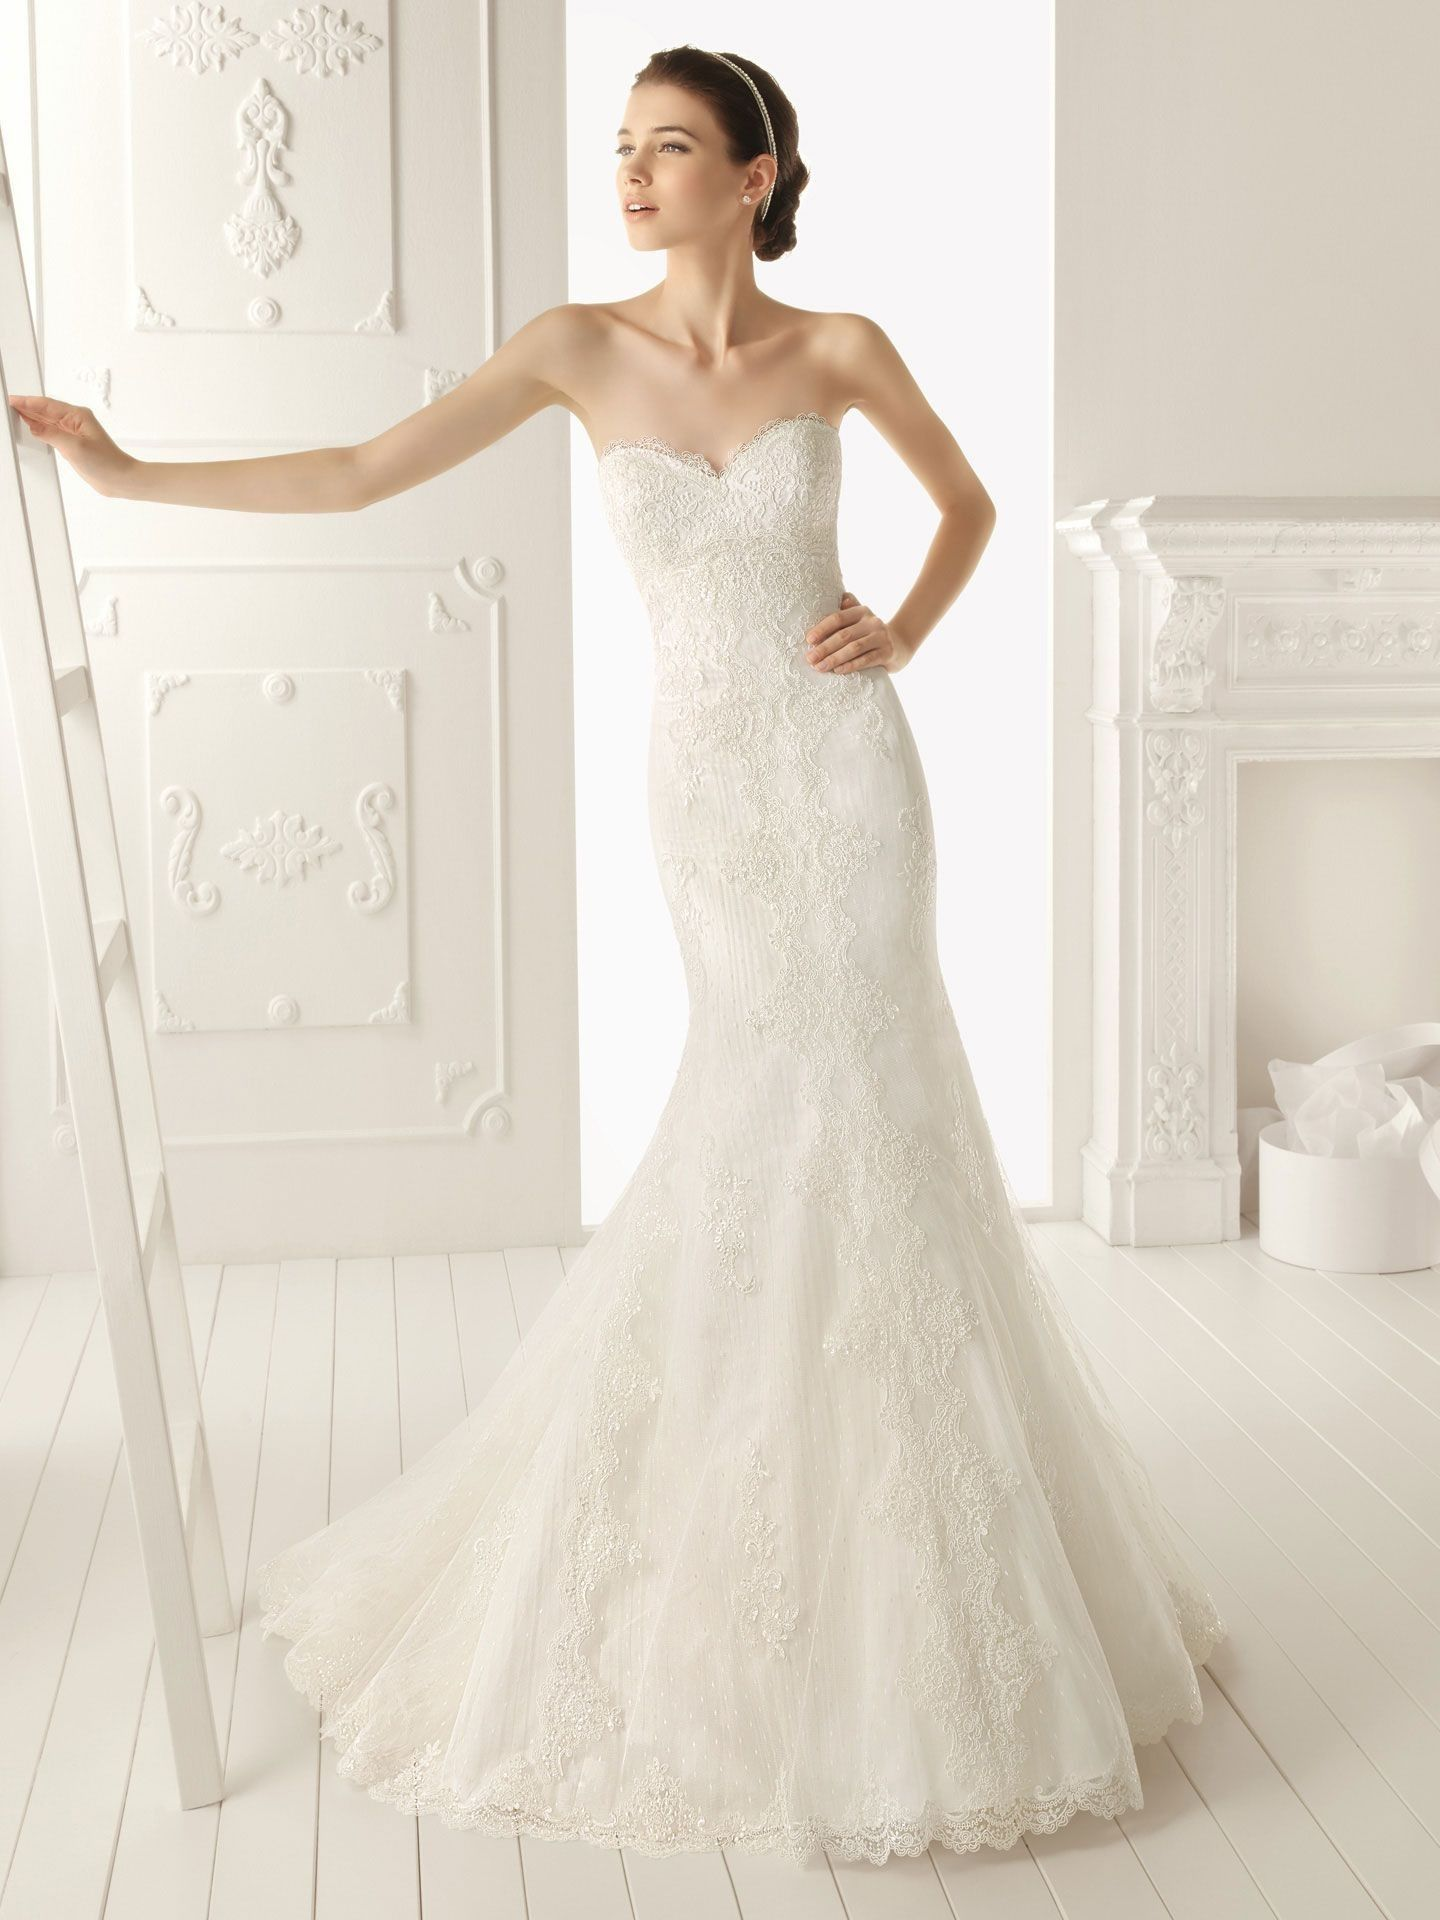 Beach wedding dresses mermaid style  Full image  ウェディングドレス  Pinterest  Neckline Mermaid and